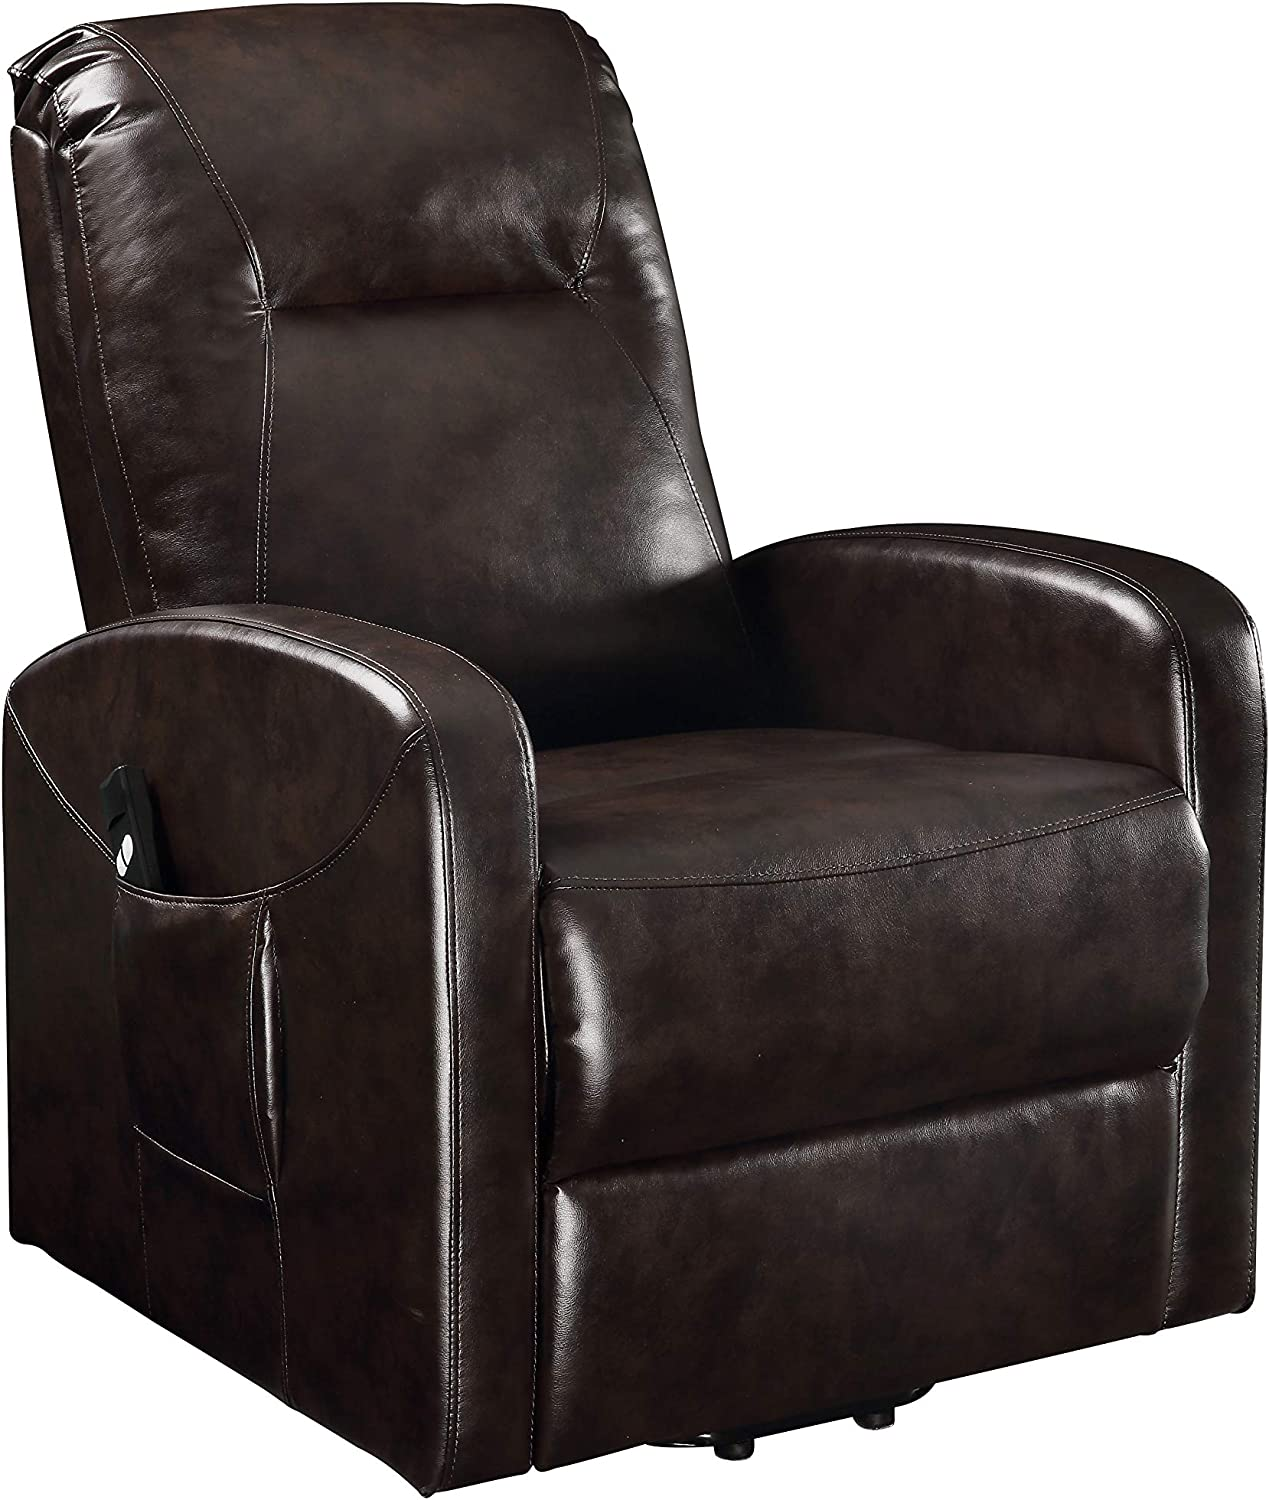 : Benjara, Brown Faux Leather Upholstered Wooden